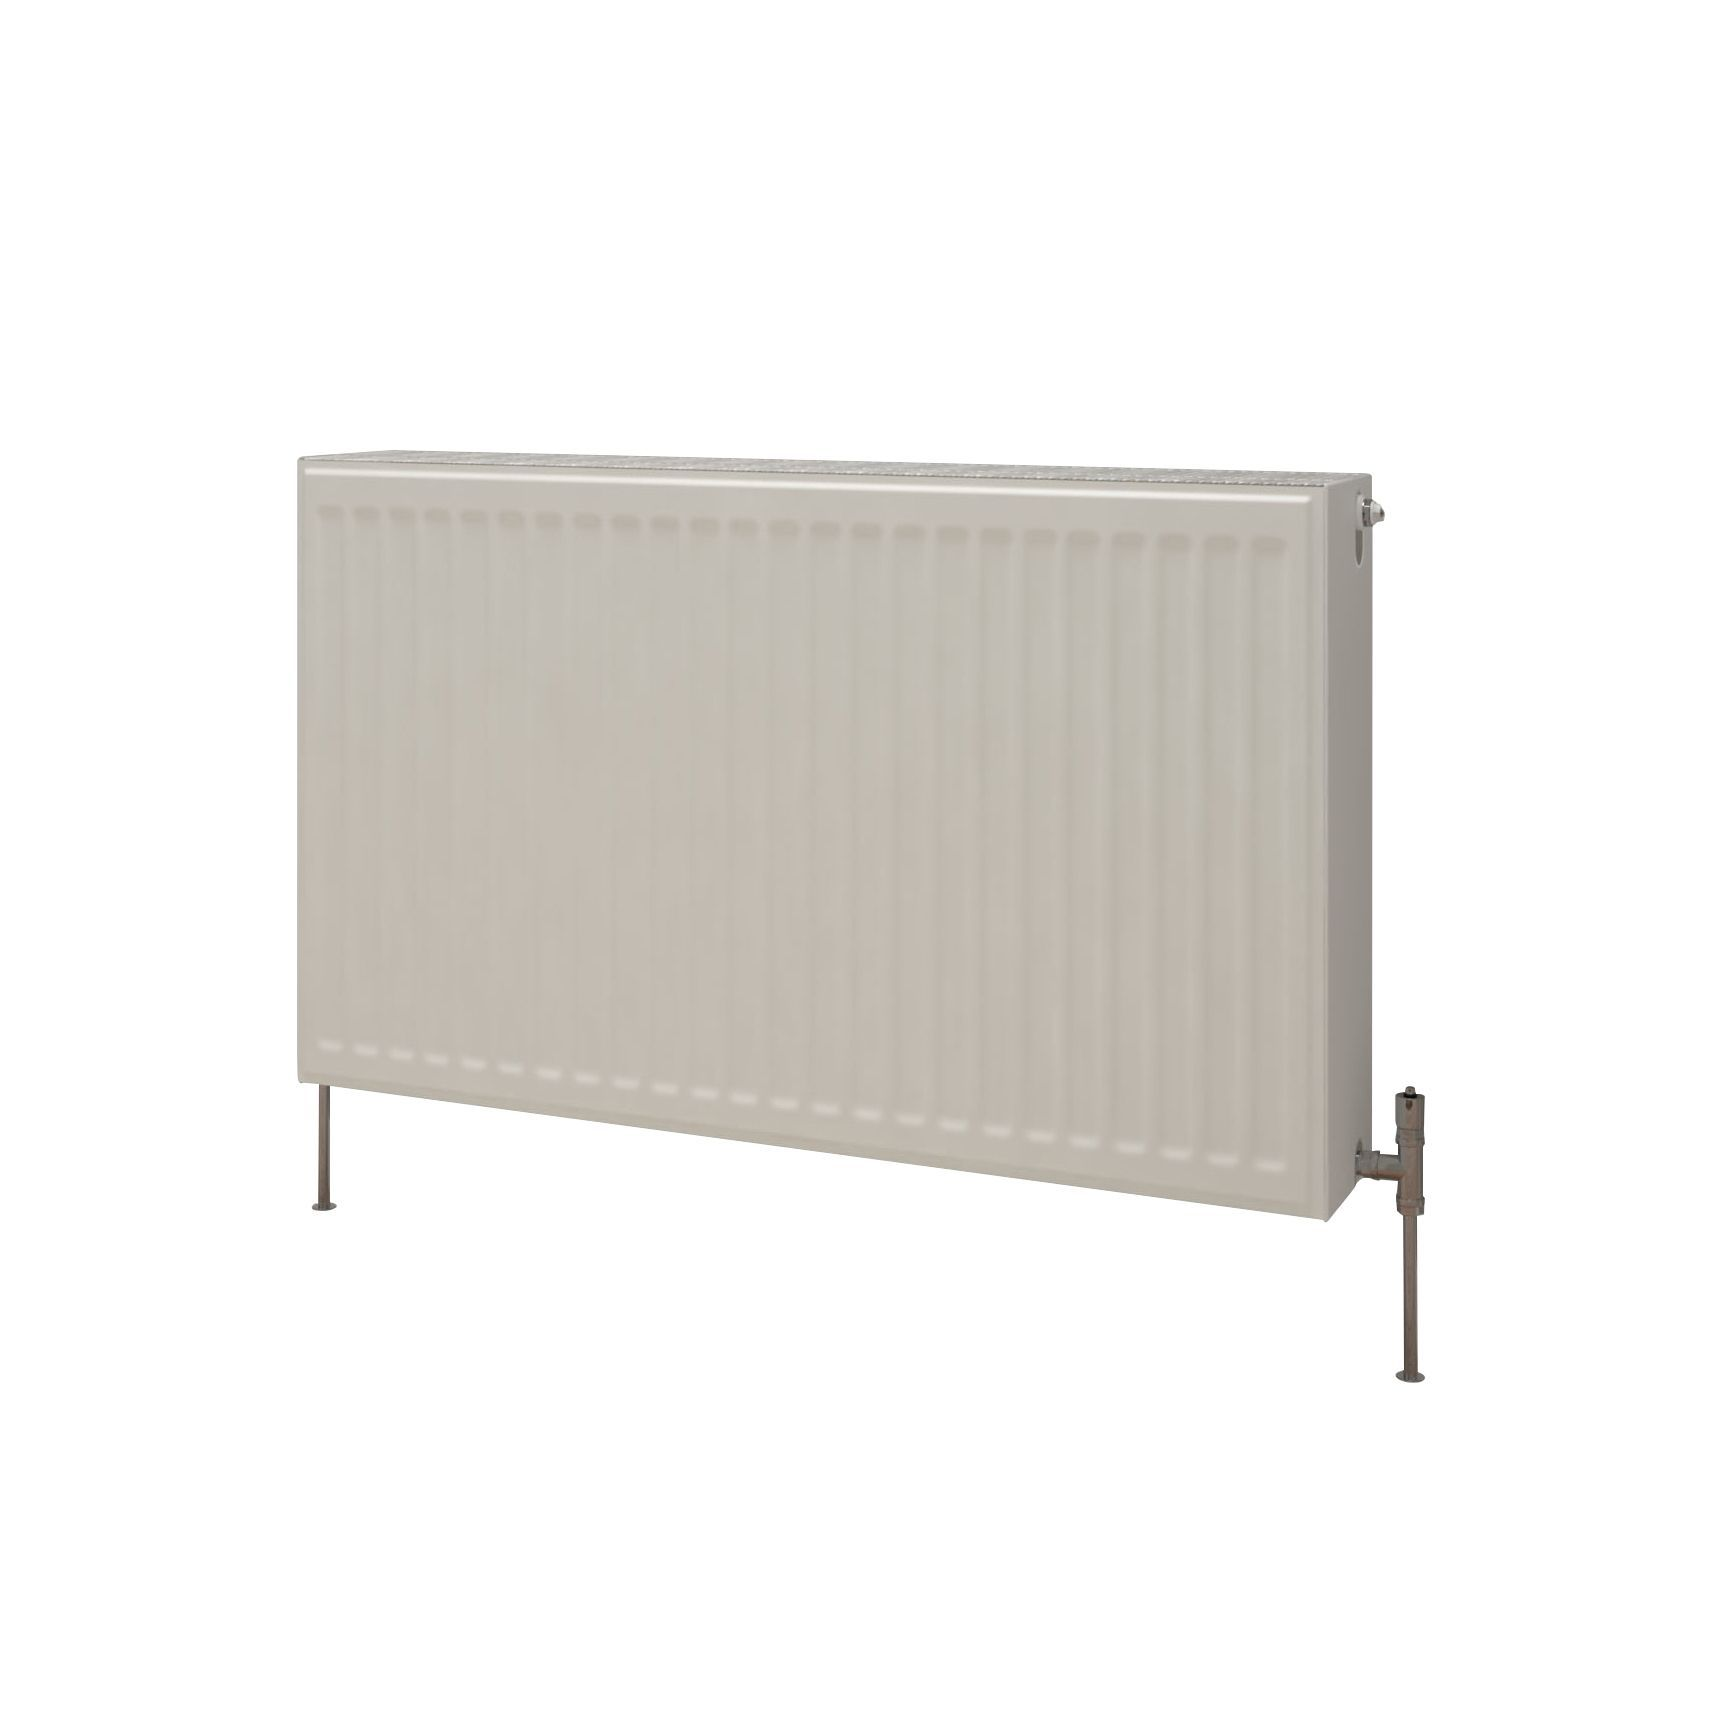 Kudox Premium double radiator Gloss (H)400 mm (W)700